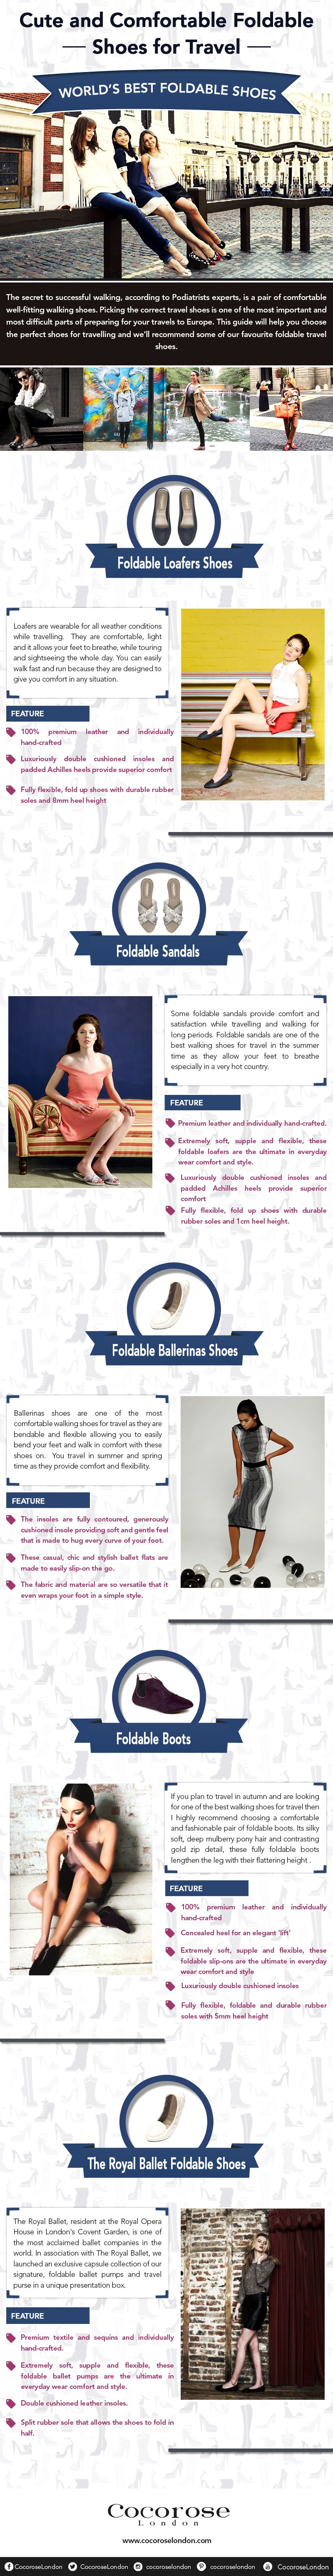 Cute and Comfortable Foldable Shoes for Travel